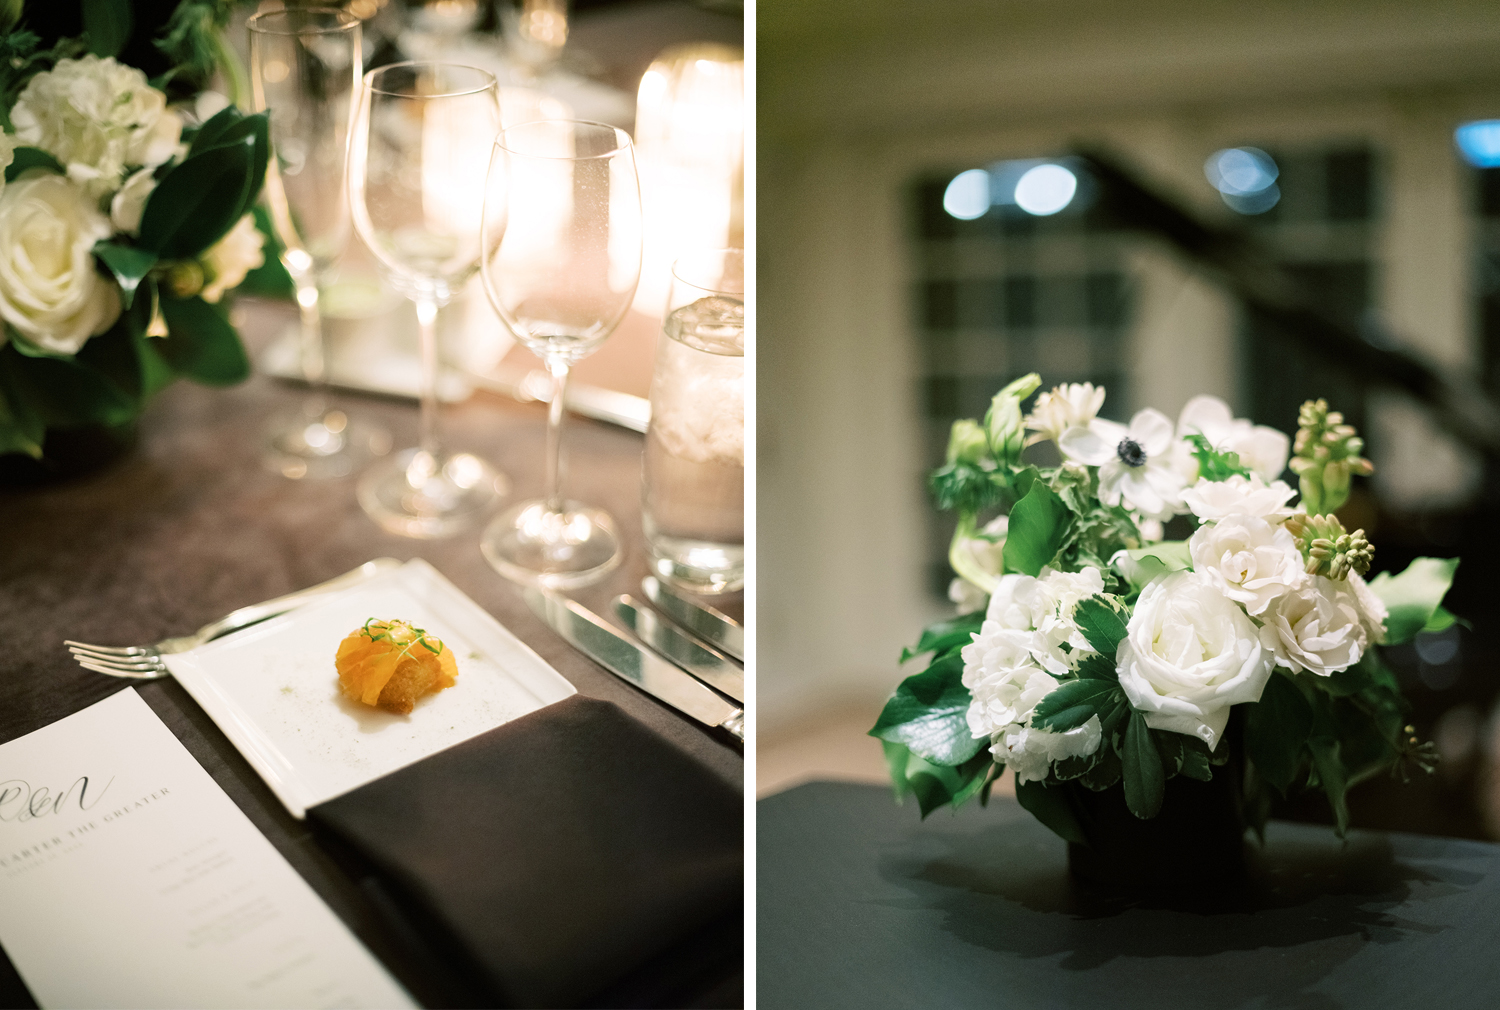 Details of the table set up at this rooftop city wedding